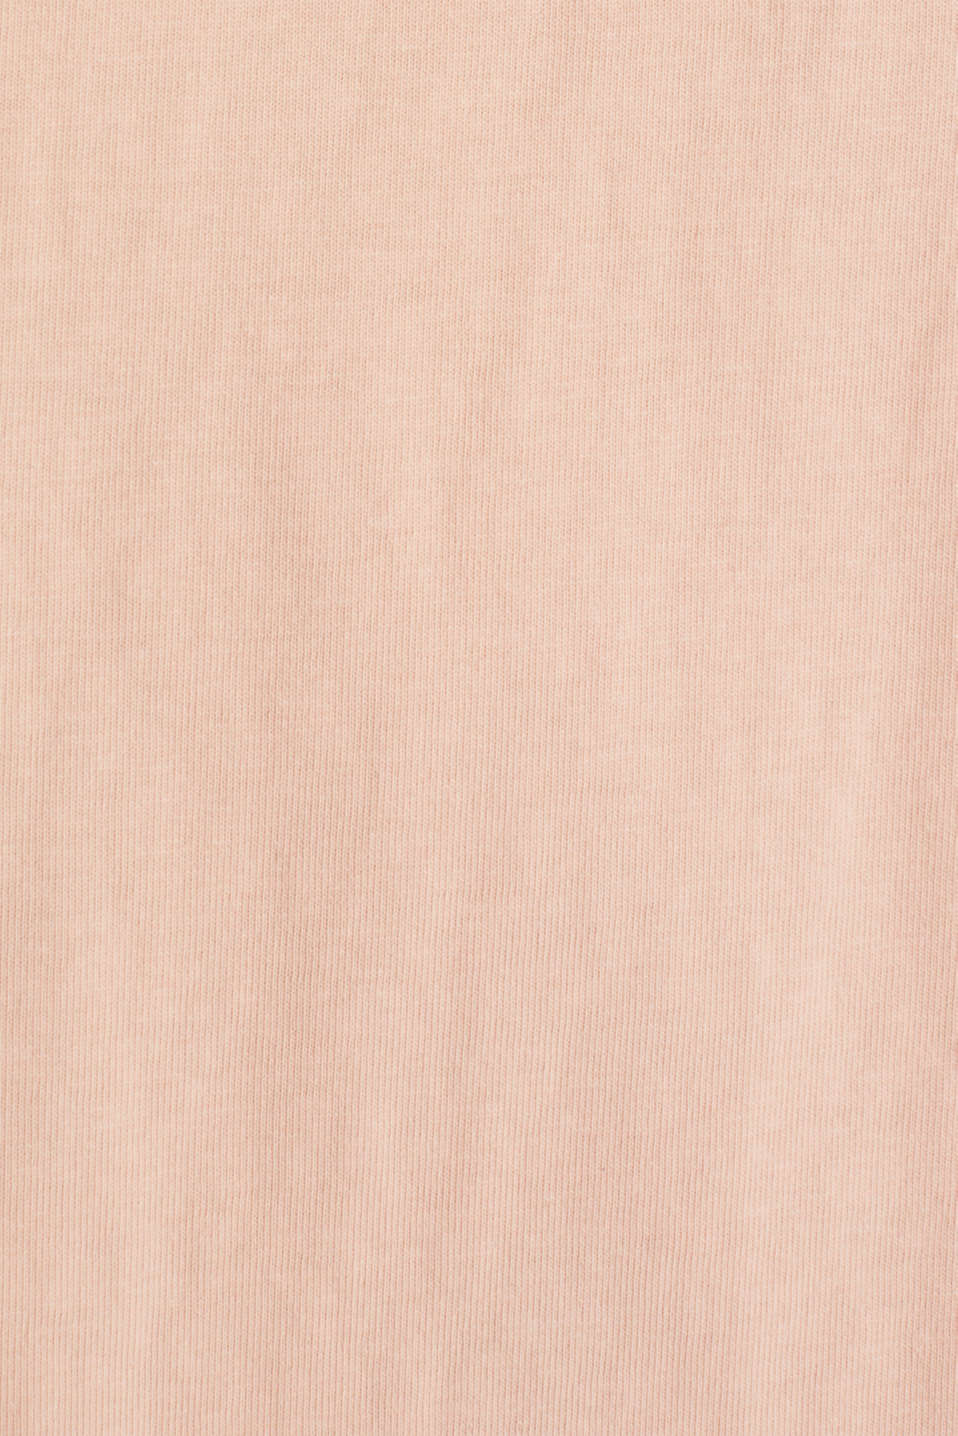 Printed T-shirt in 100% cotton, PEACH, detail image number 4